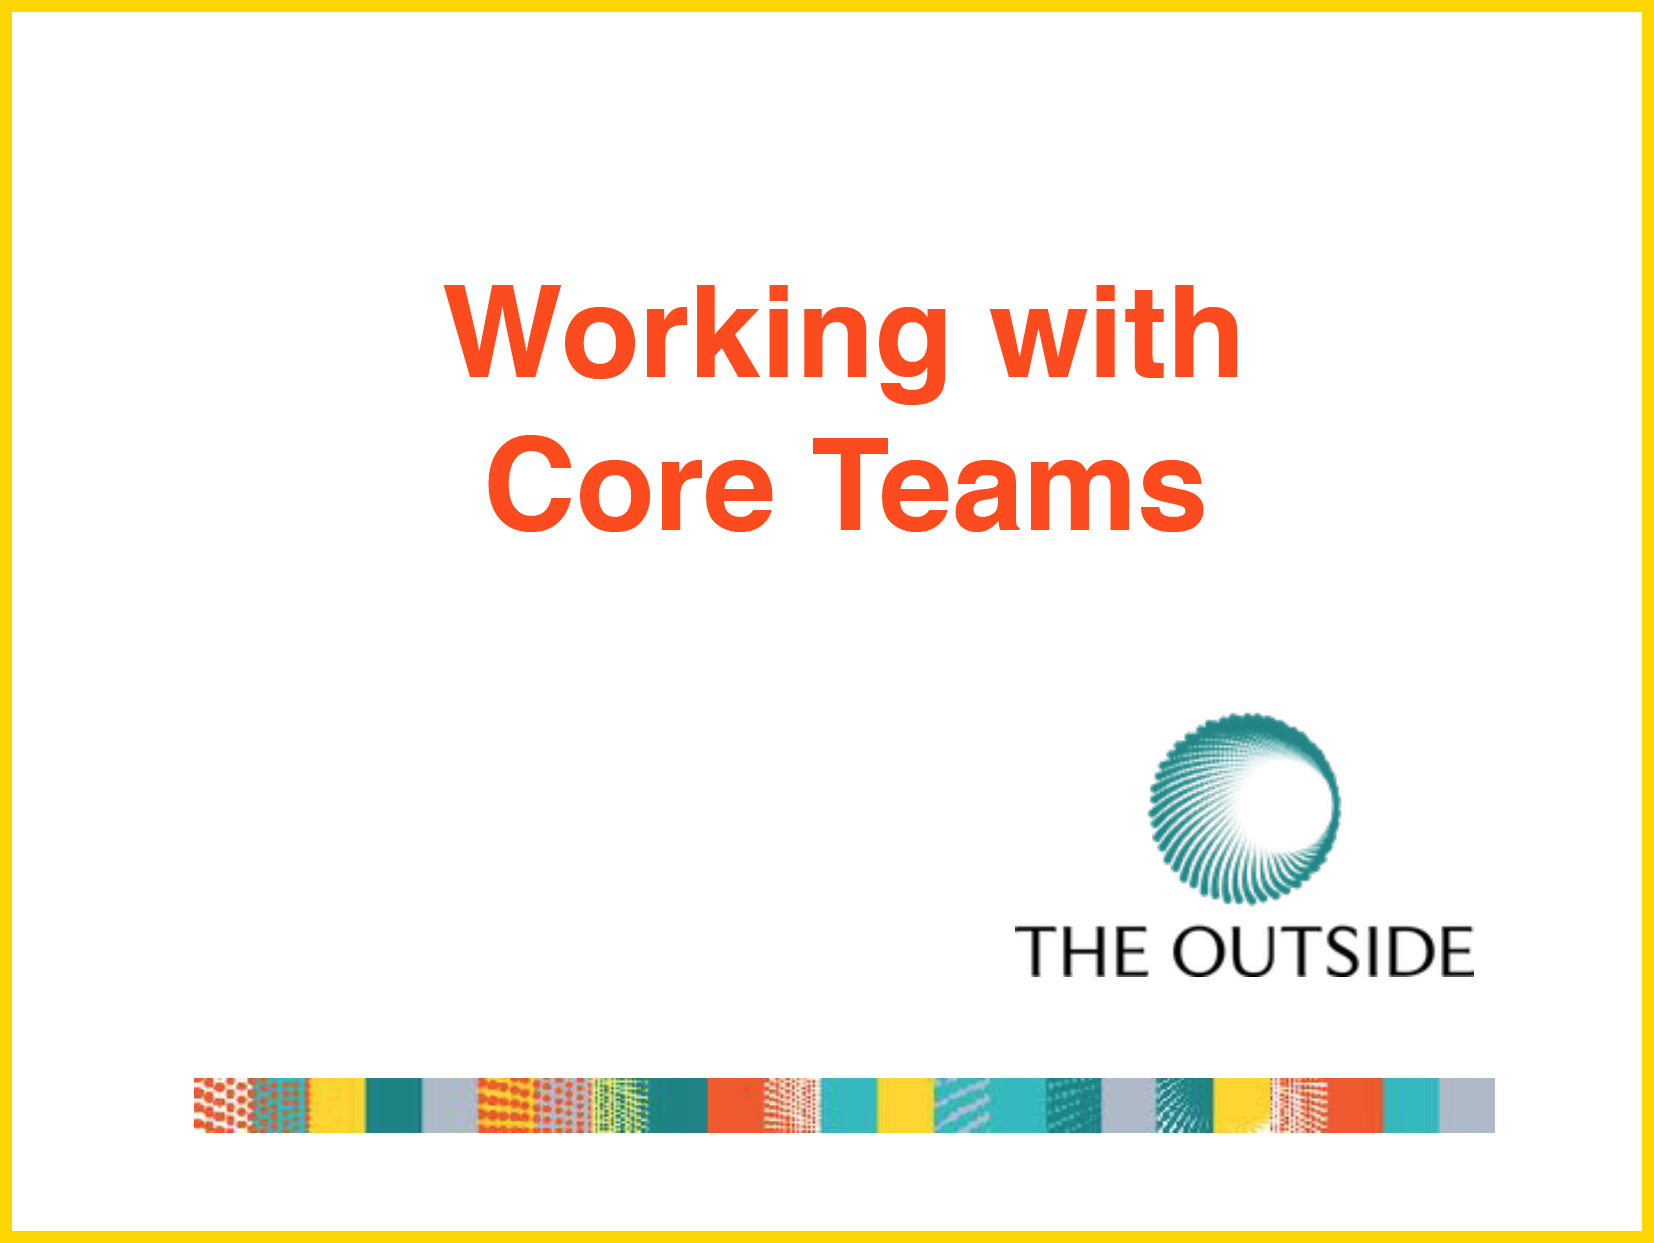 DOWNLOAD: 'WORKING WITH CORE TEAMS' PRESENTATION